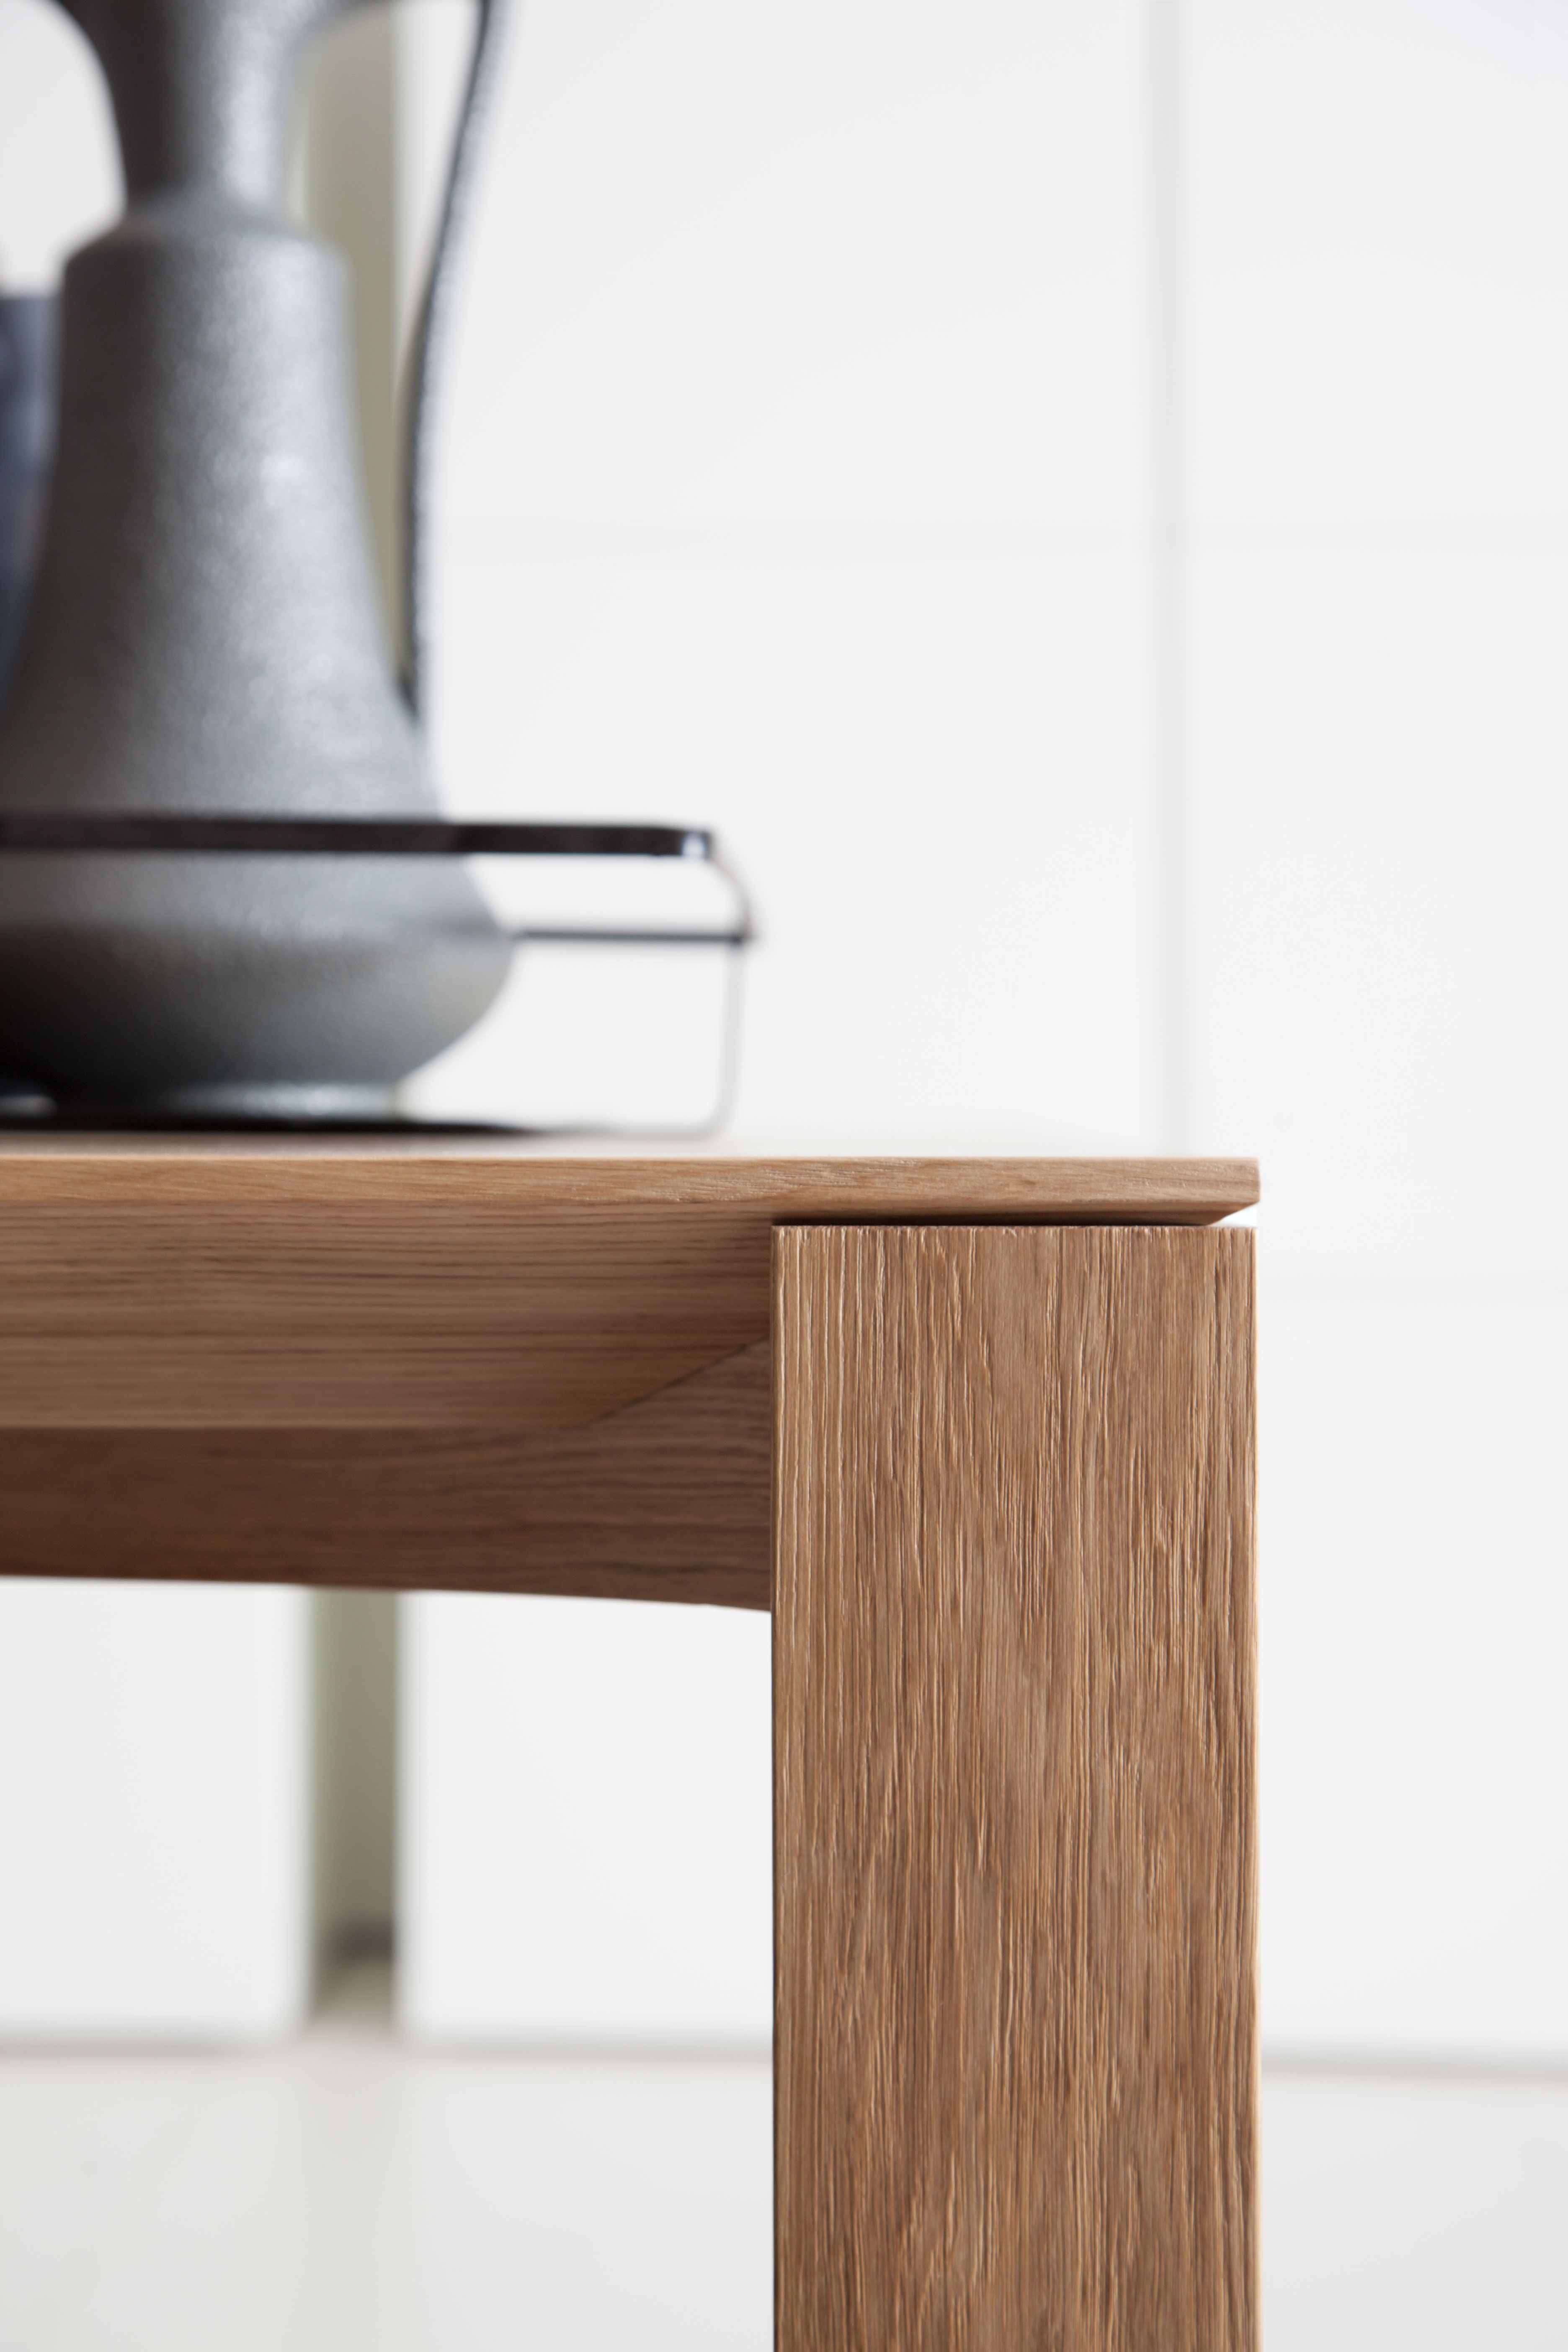 Wood Table - details